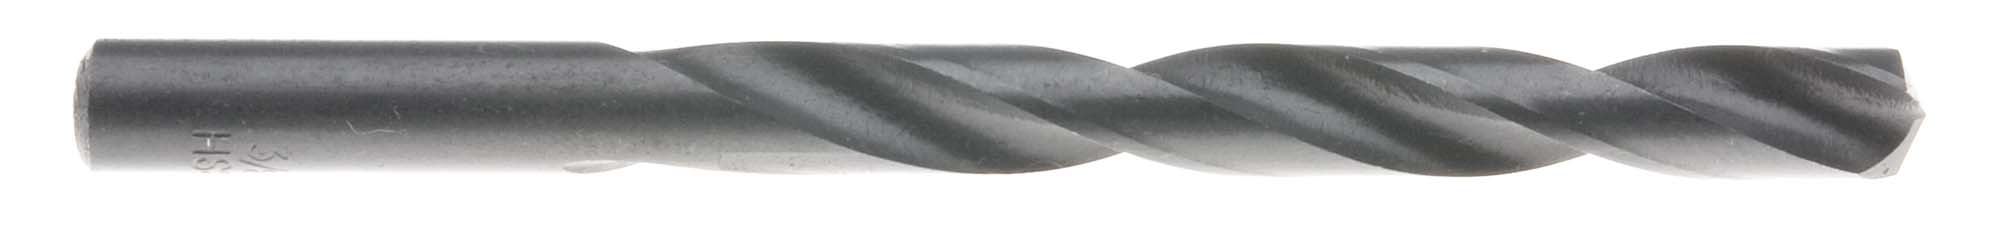 "JSP-7/16  7/16"" Heavy Duty 135 Degree Split Point Jobber Length Drill Bit, High Speed Steel"